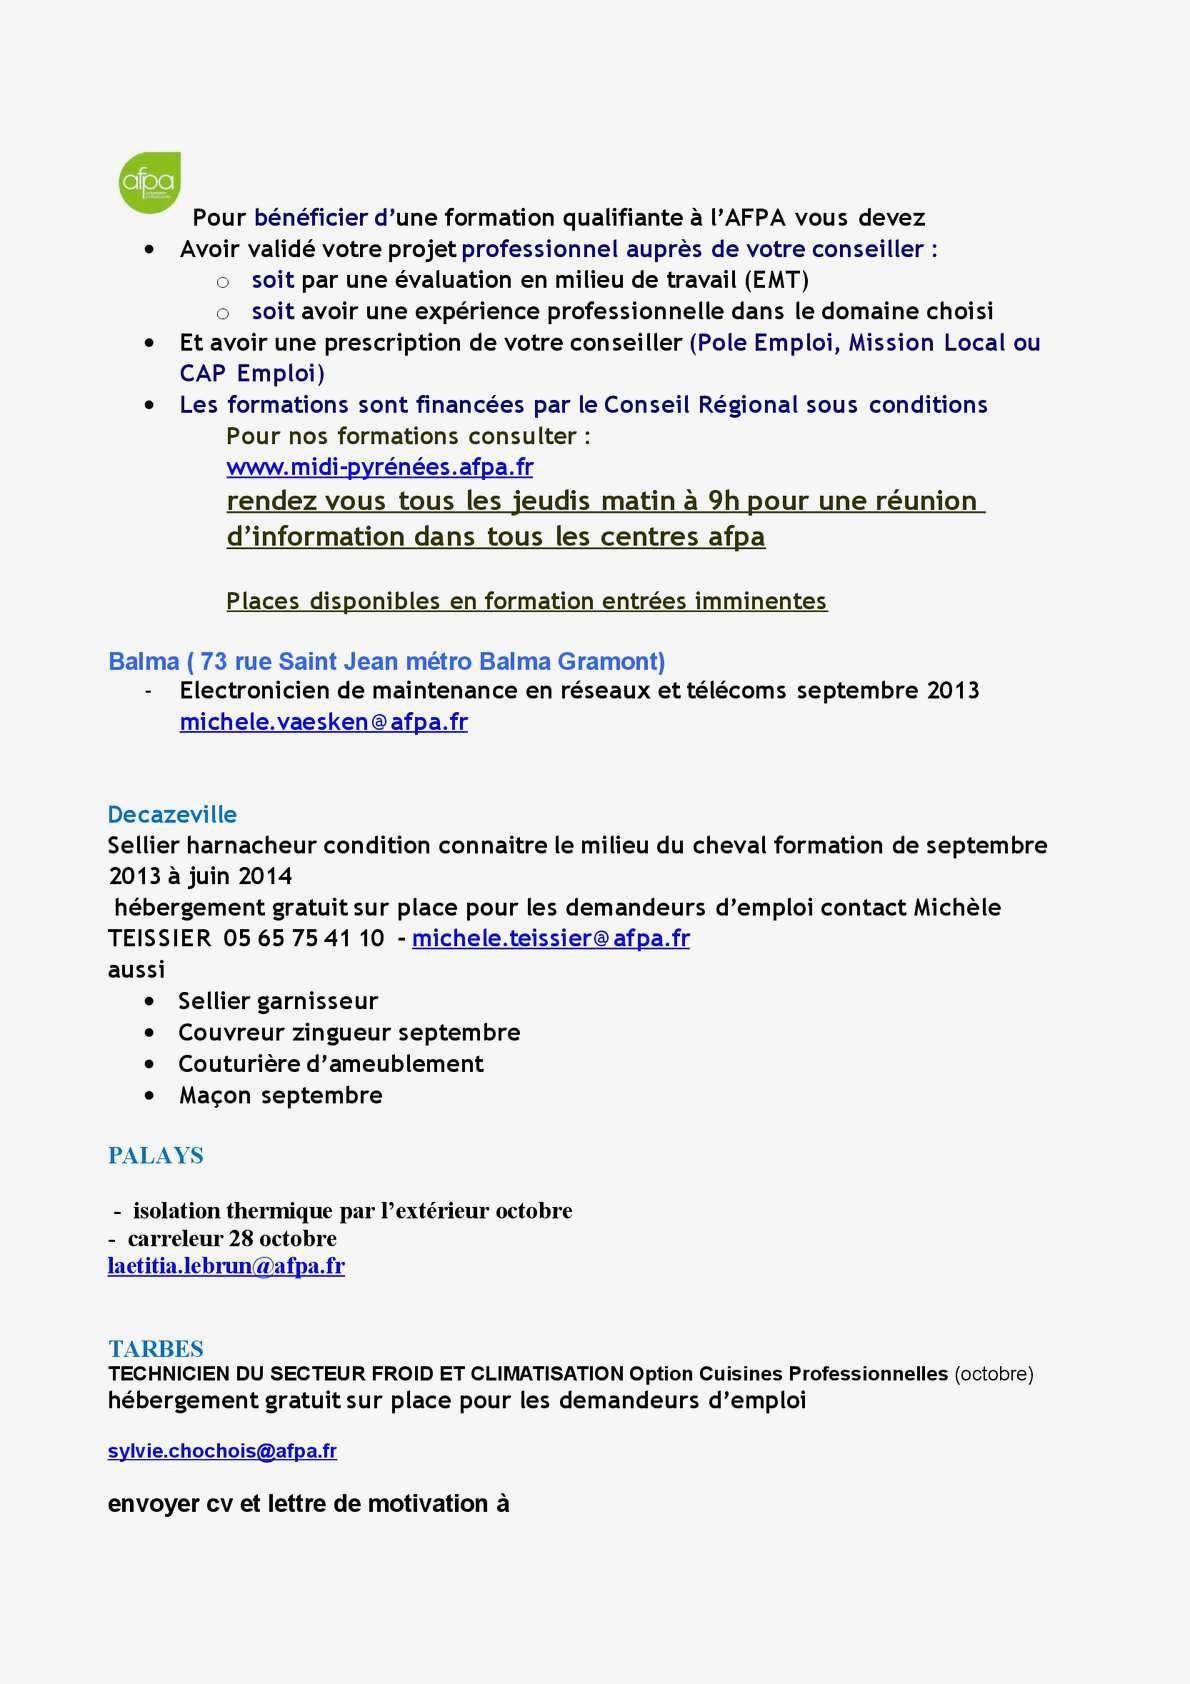 Lettre De Motivation Reconversion Professionnelle Lettre De Motivation formation Afpa Reconversion Lettre De